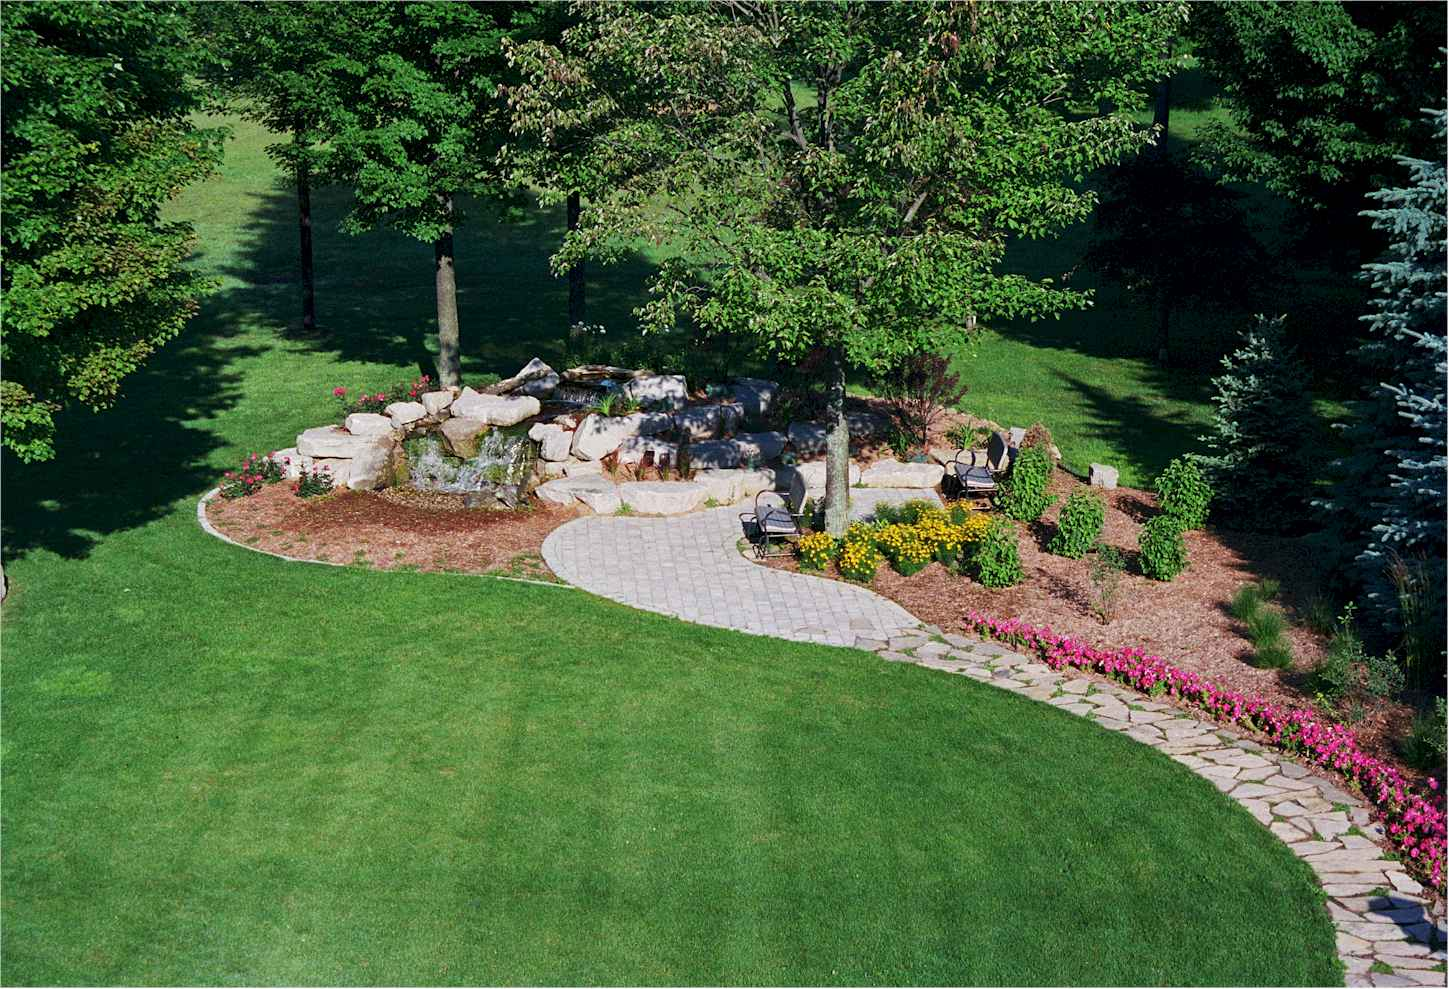 5 landscaping ideas to wow the neighbors for Yard landscaping ideas